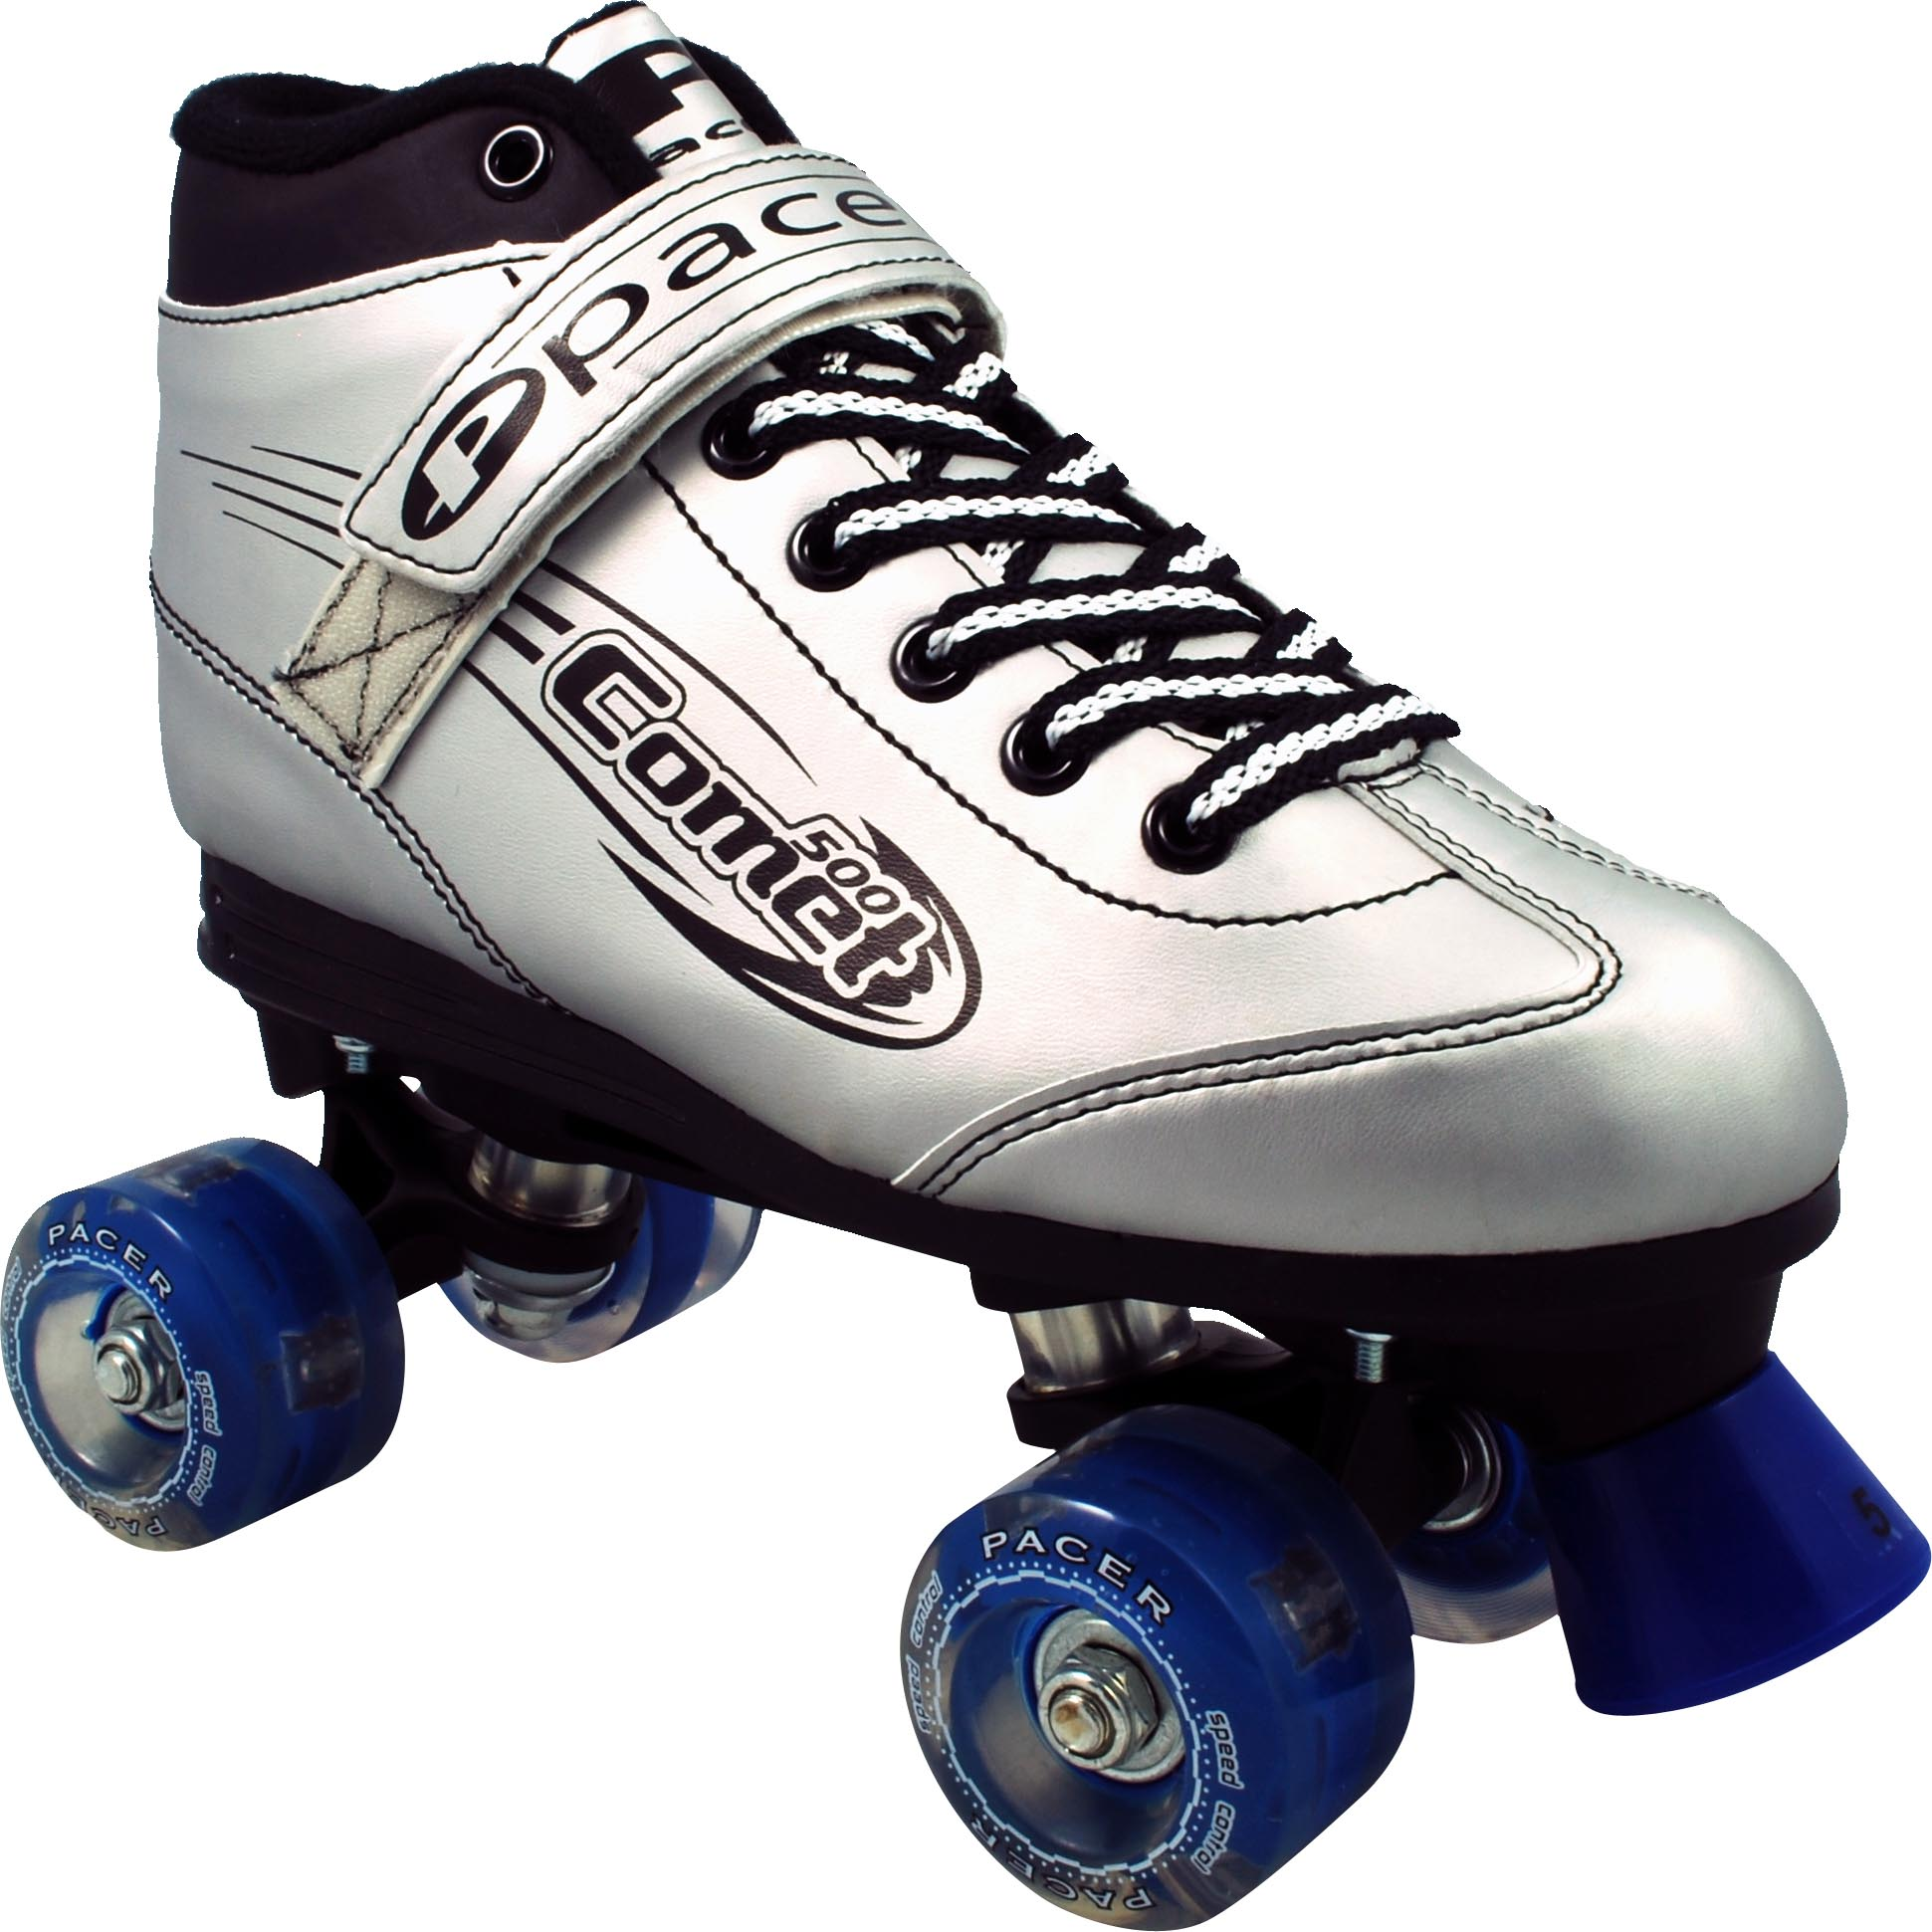 INSTOCK Pacer Silver Comet Light-Up Skates!